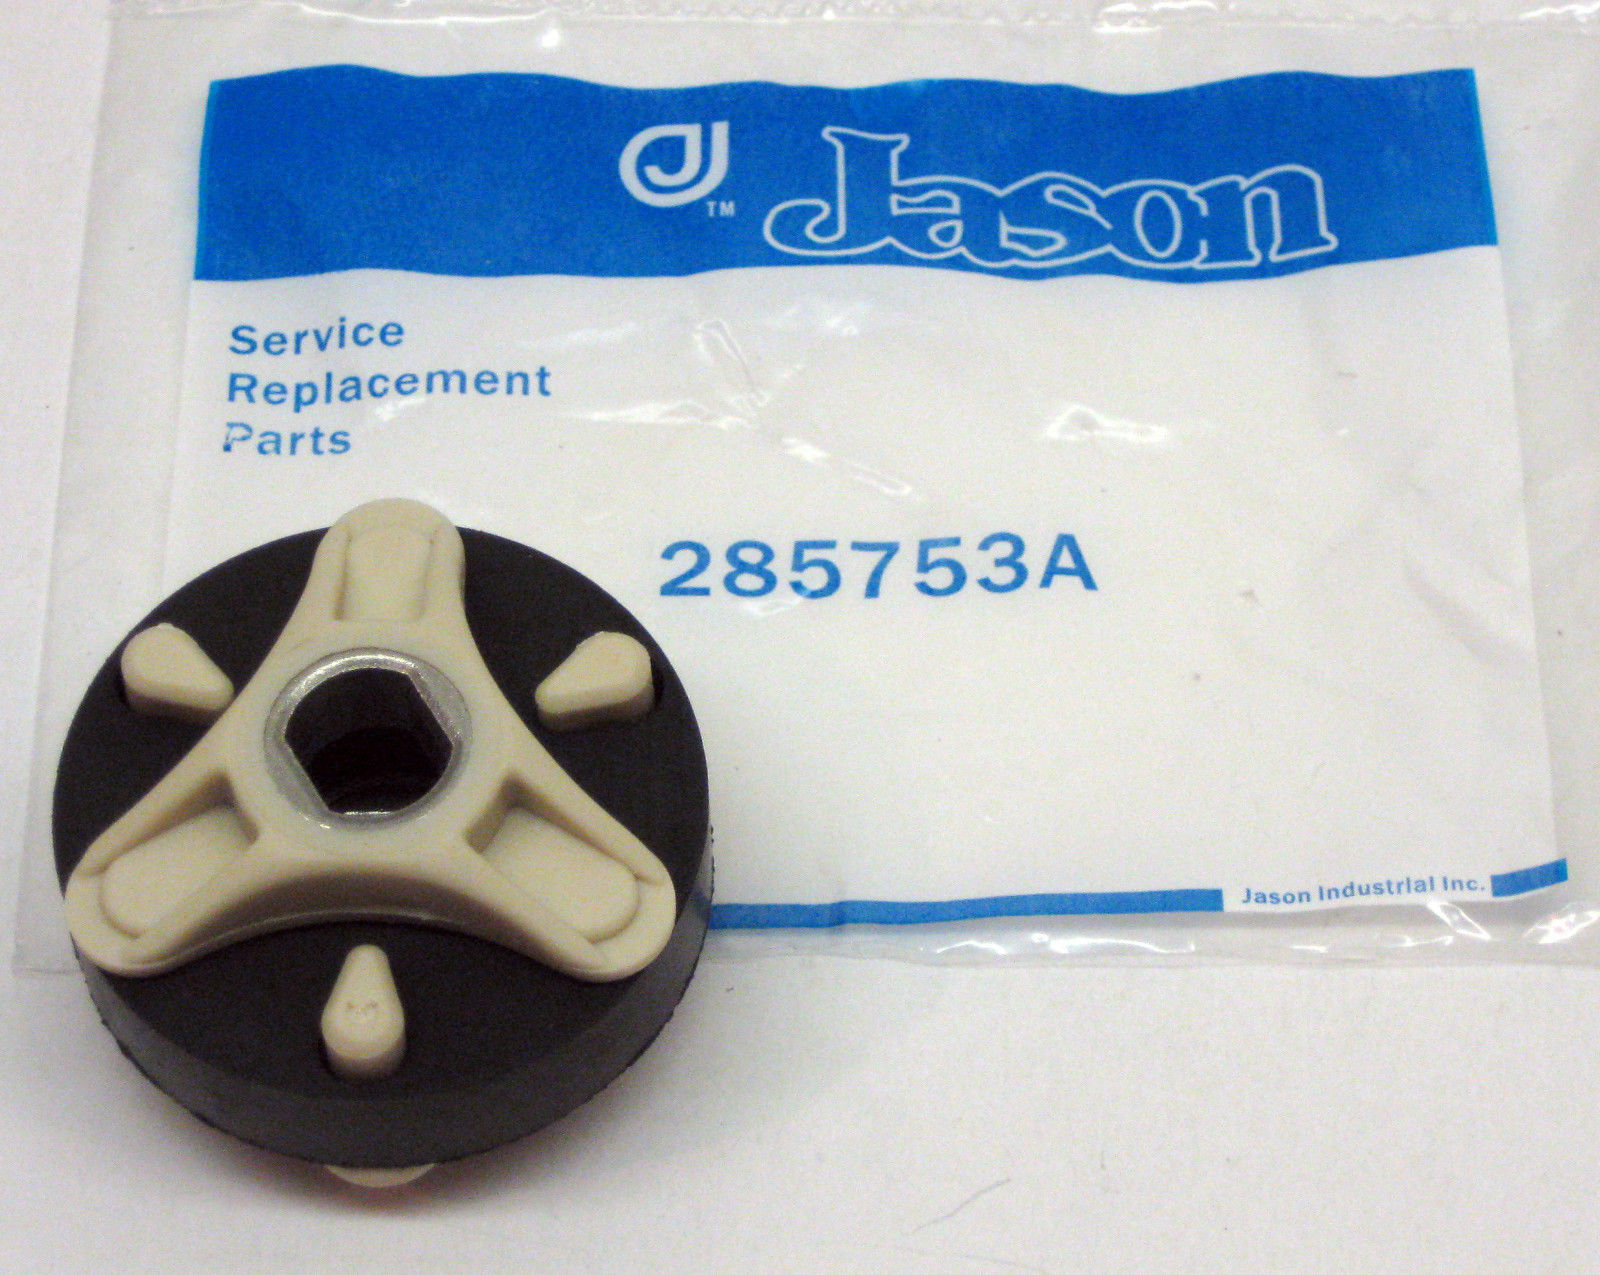 Lp753a Washer Motor Coupling For Whirlpool Kenmore 285753a